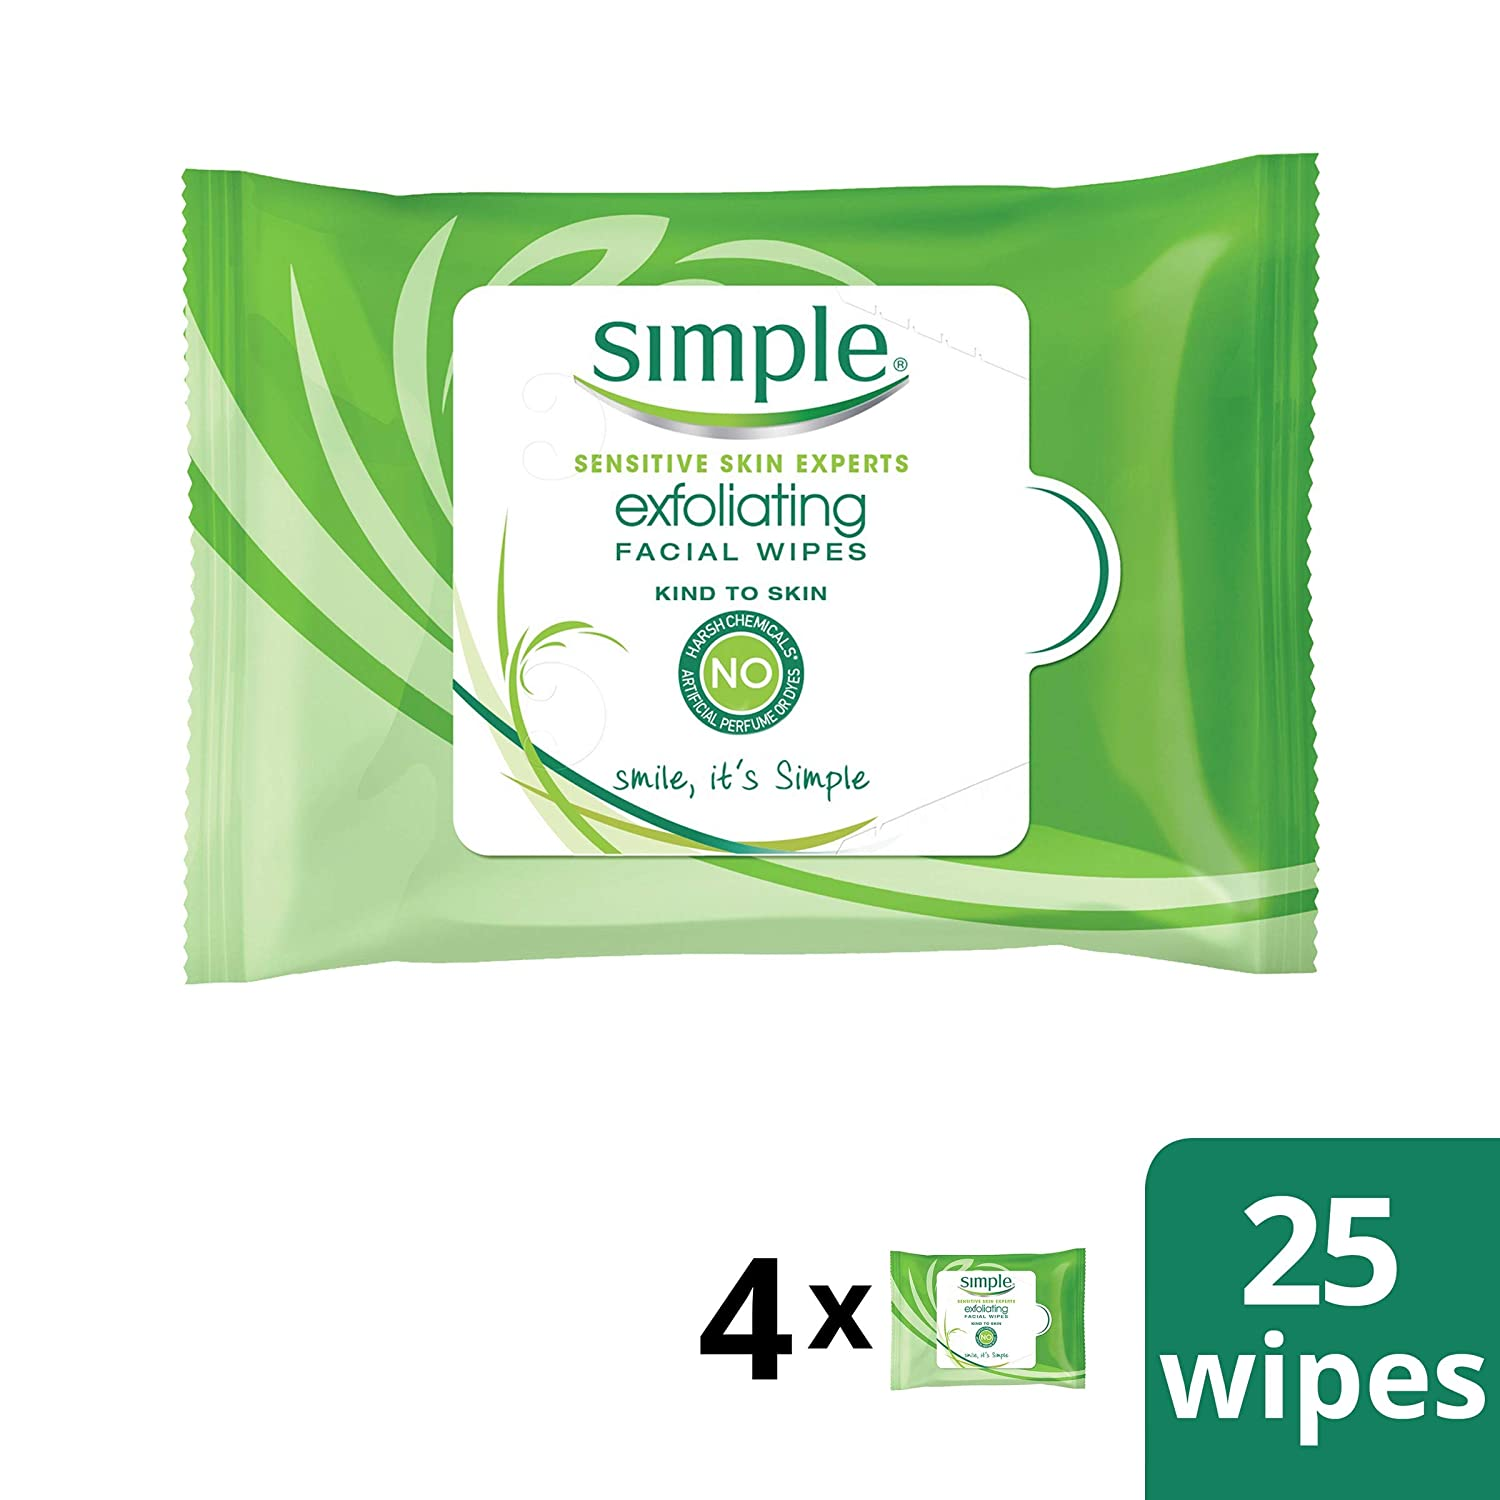 Simple with Vitamin E Oil to Moisturize Skin Exfoliating Facial Wipes 25 wipes, 4 count